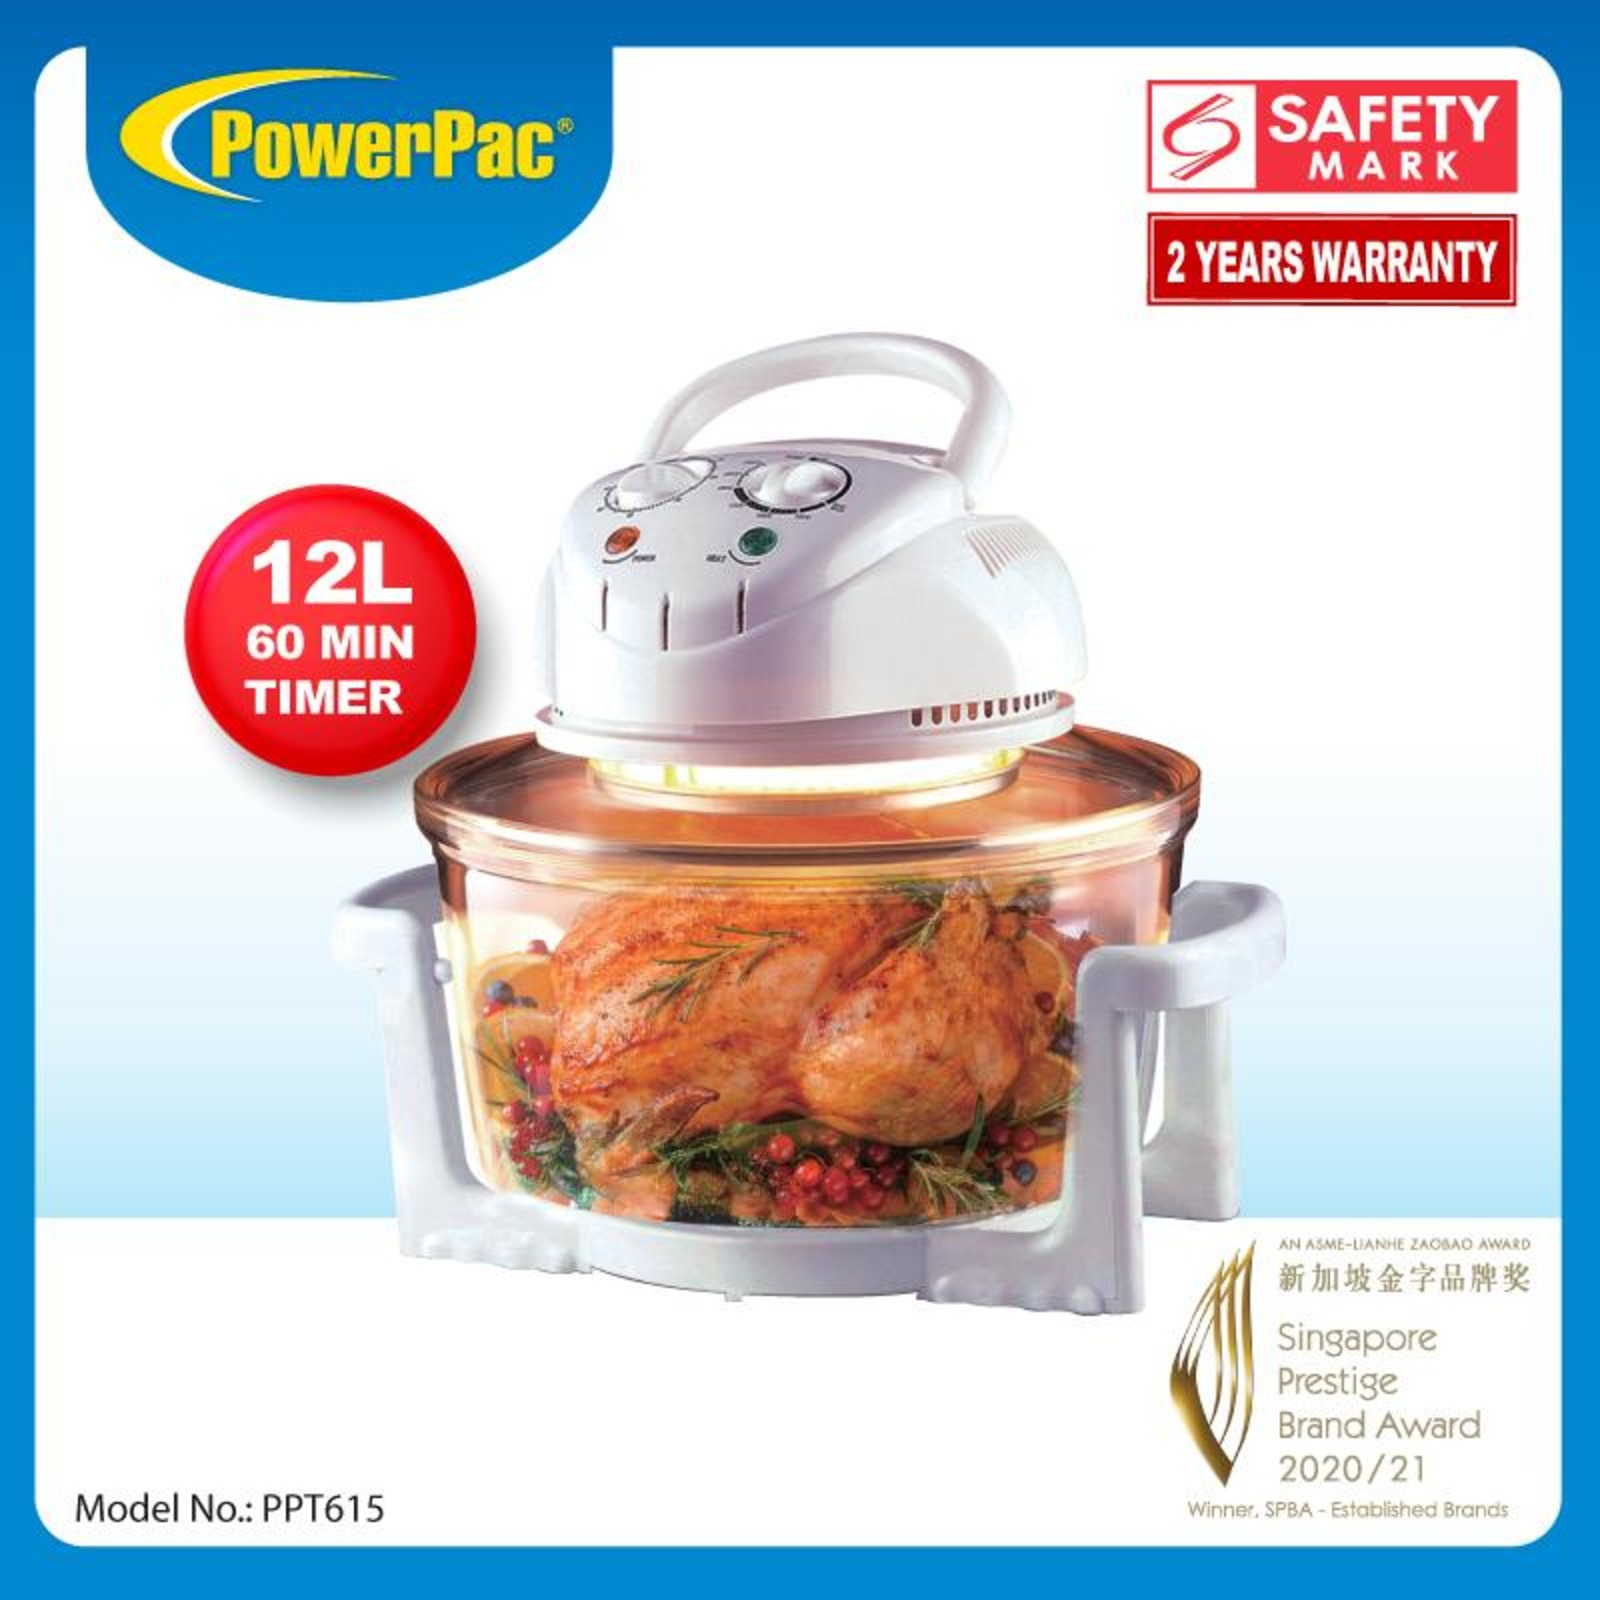 PowerPac (PPT615) Halogen Oven